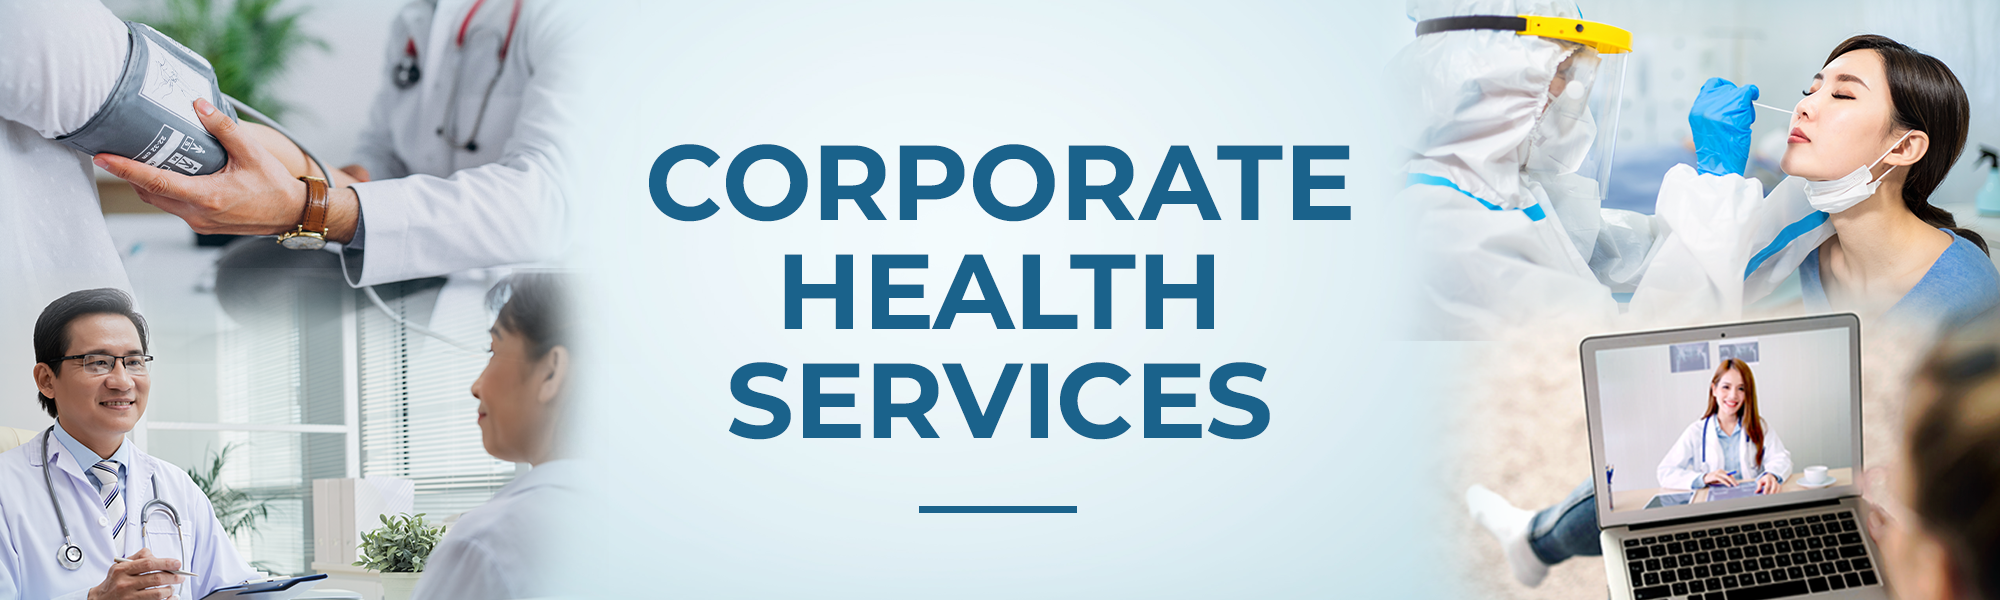 CORPORATE-HEALTH-SCREENING-BANNER